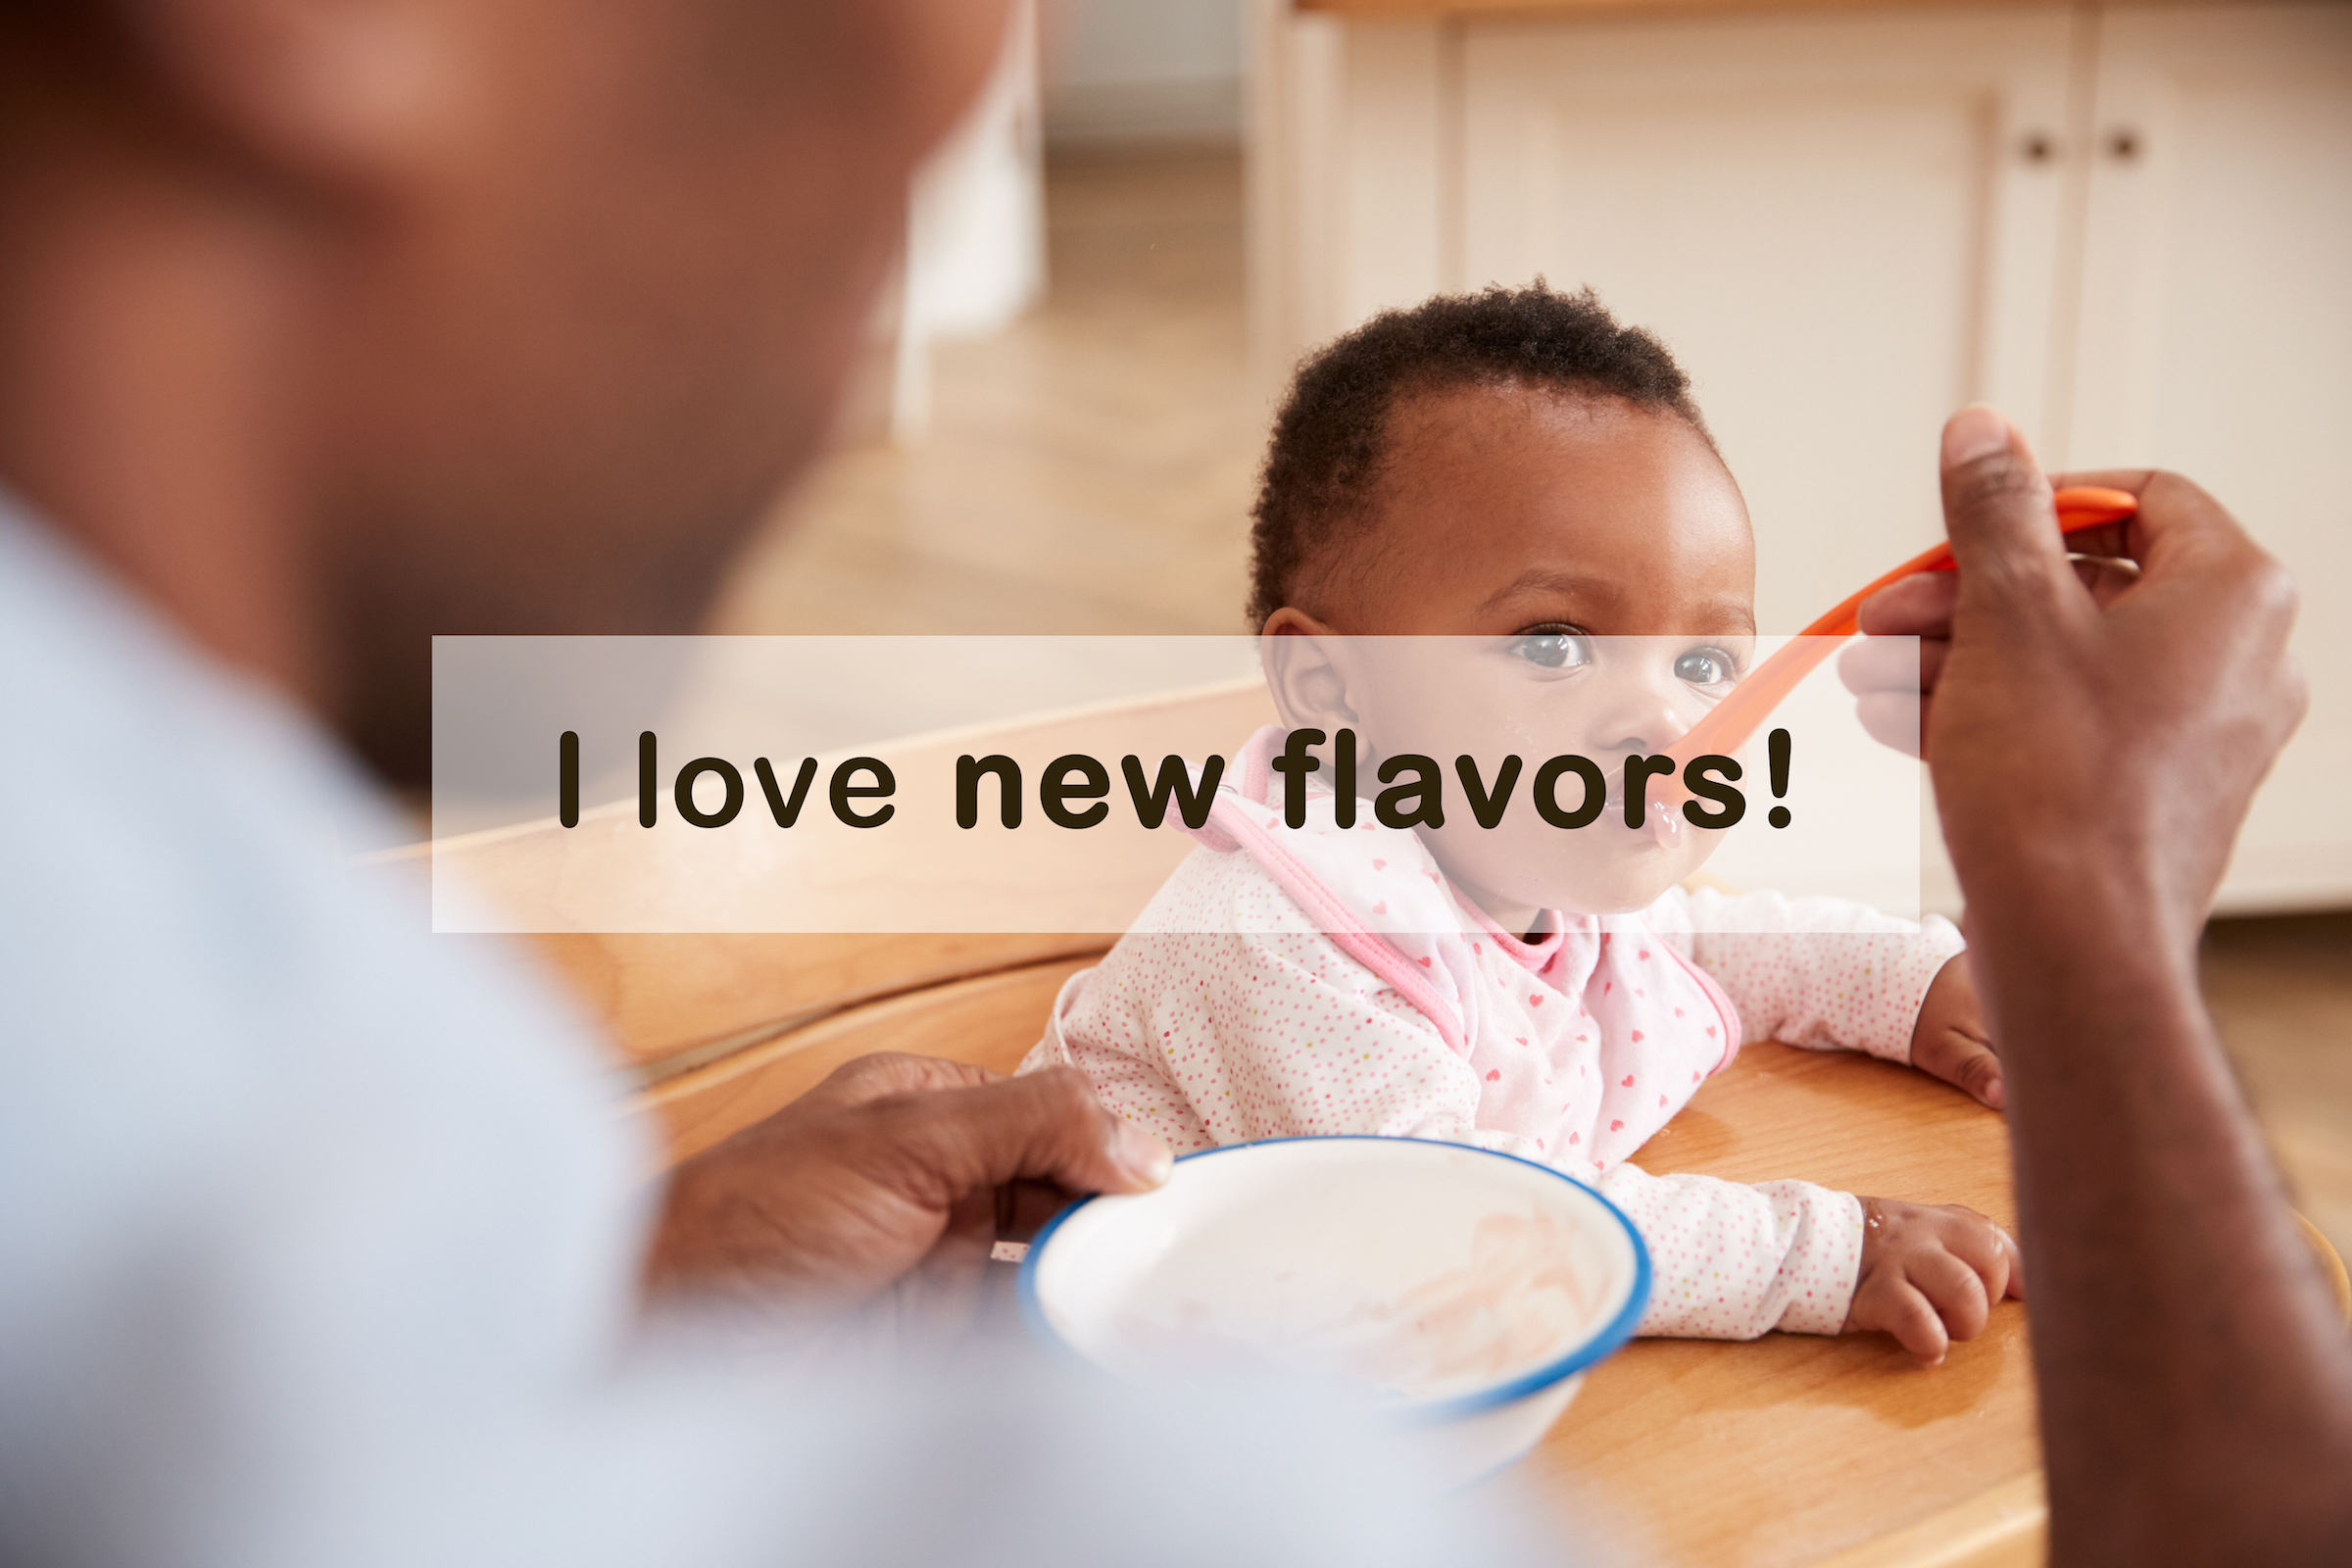 Introducing Babies to Solids Early Reduces Food Allergies, Study Finds